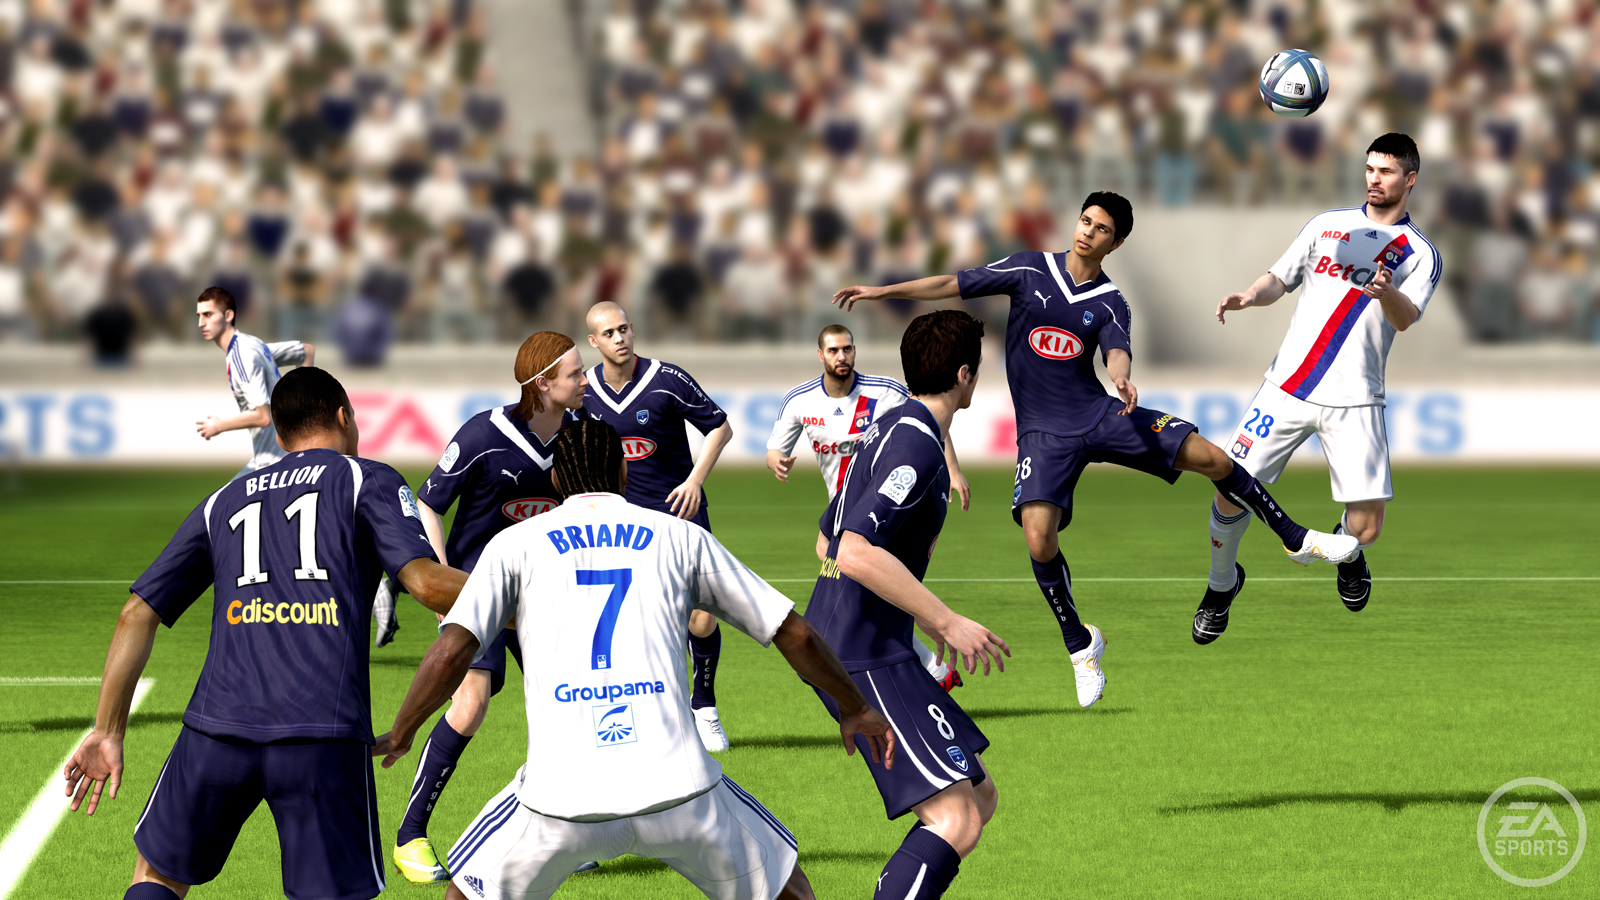 Playdownstation net 2010 fifa 2008 fifa 18 marseille turn